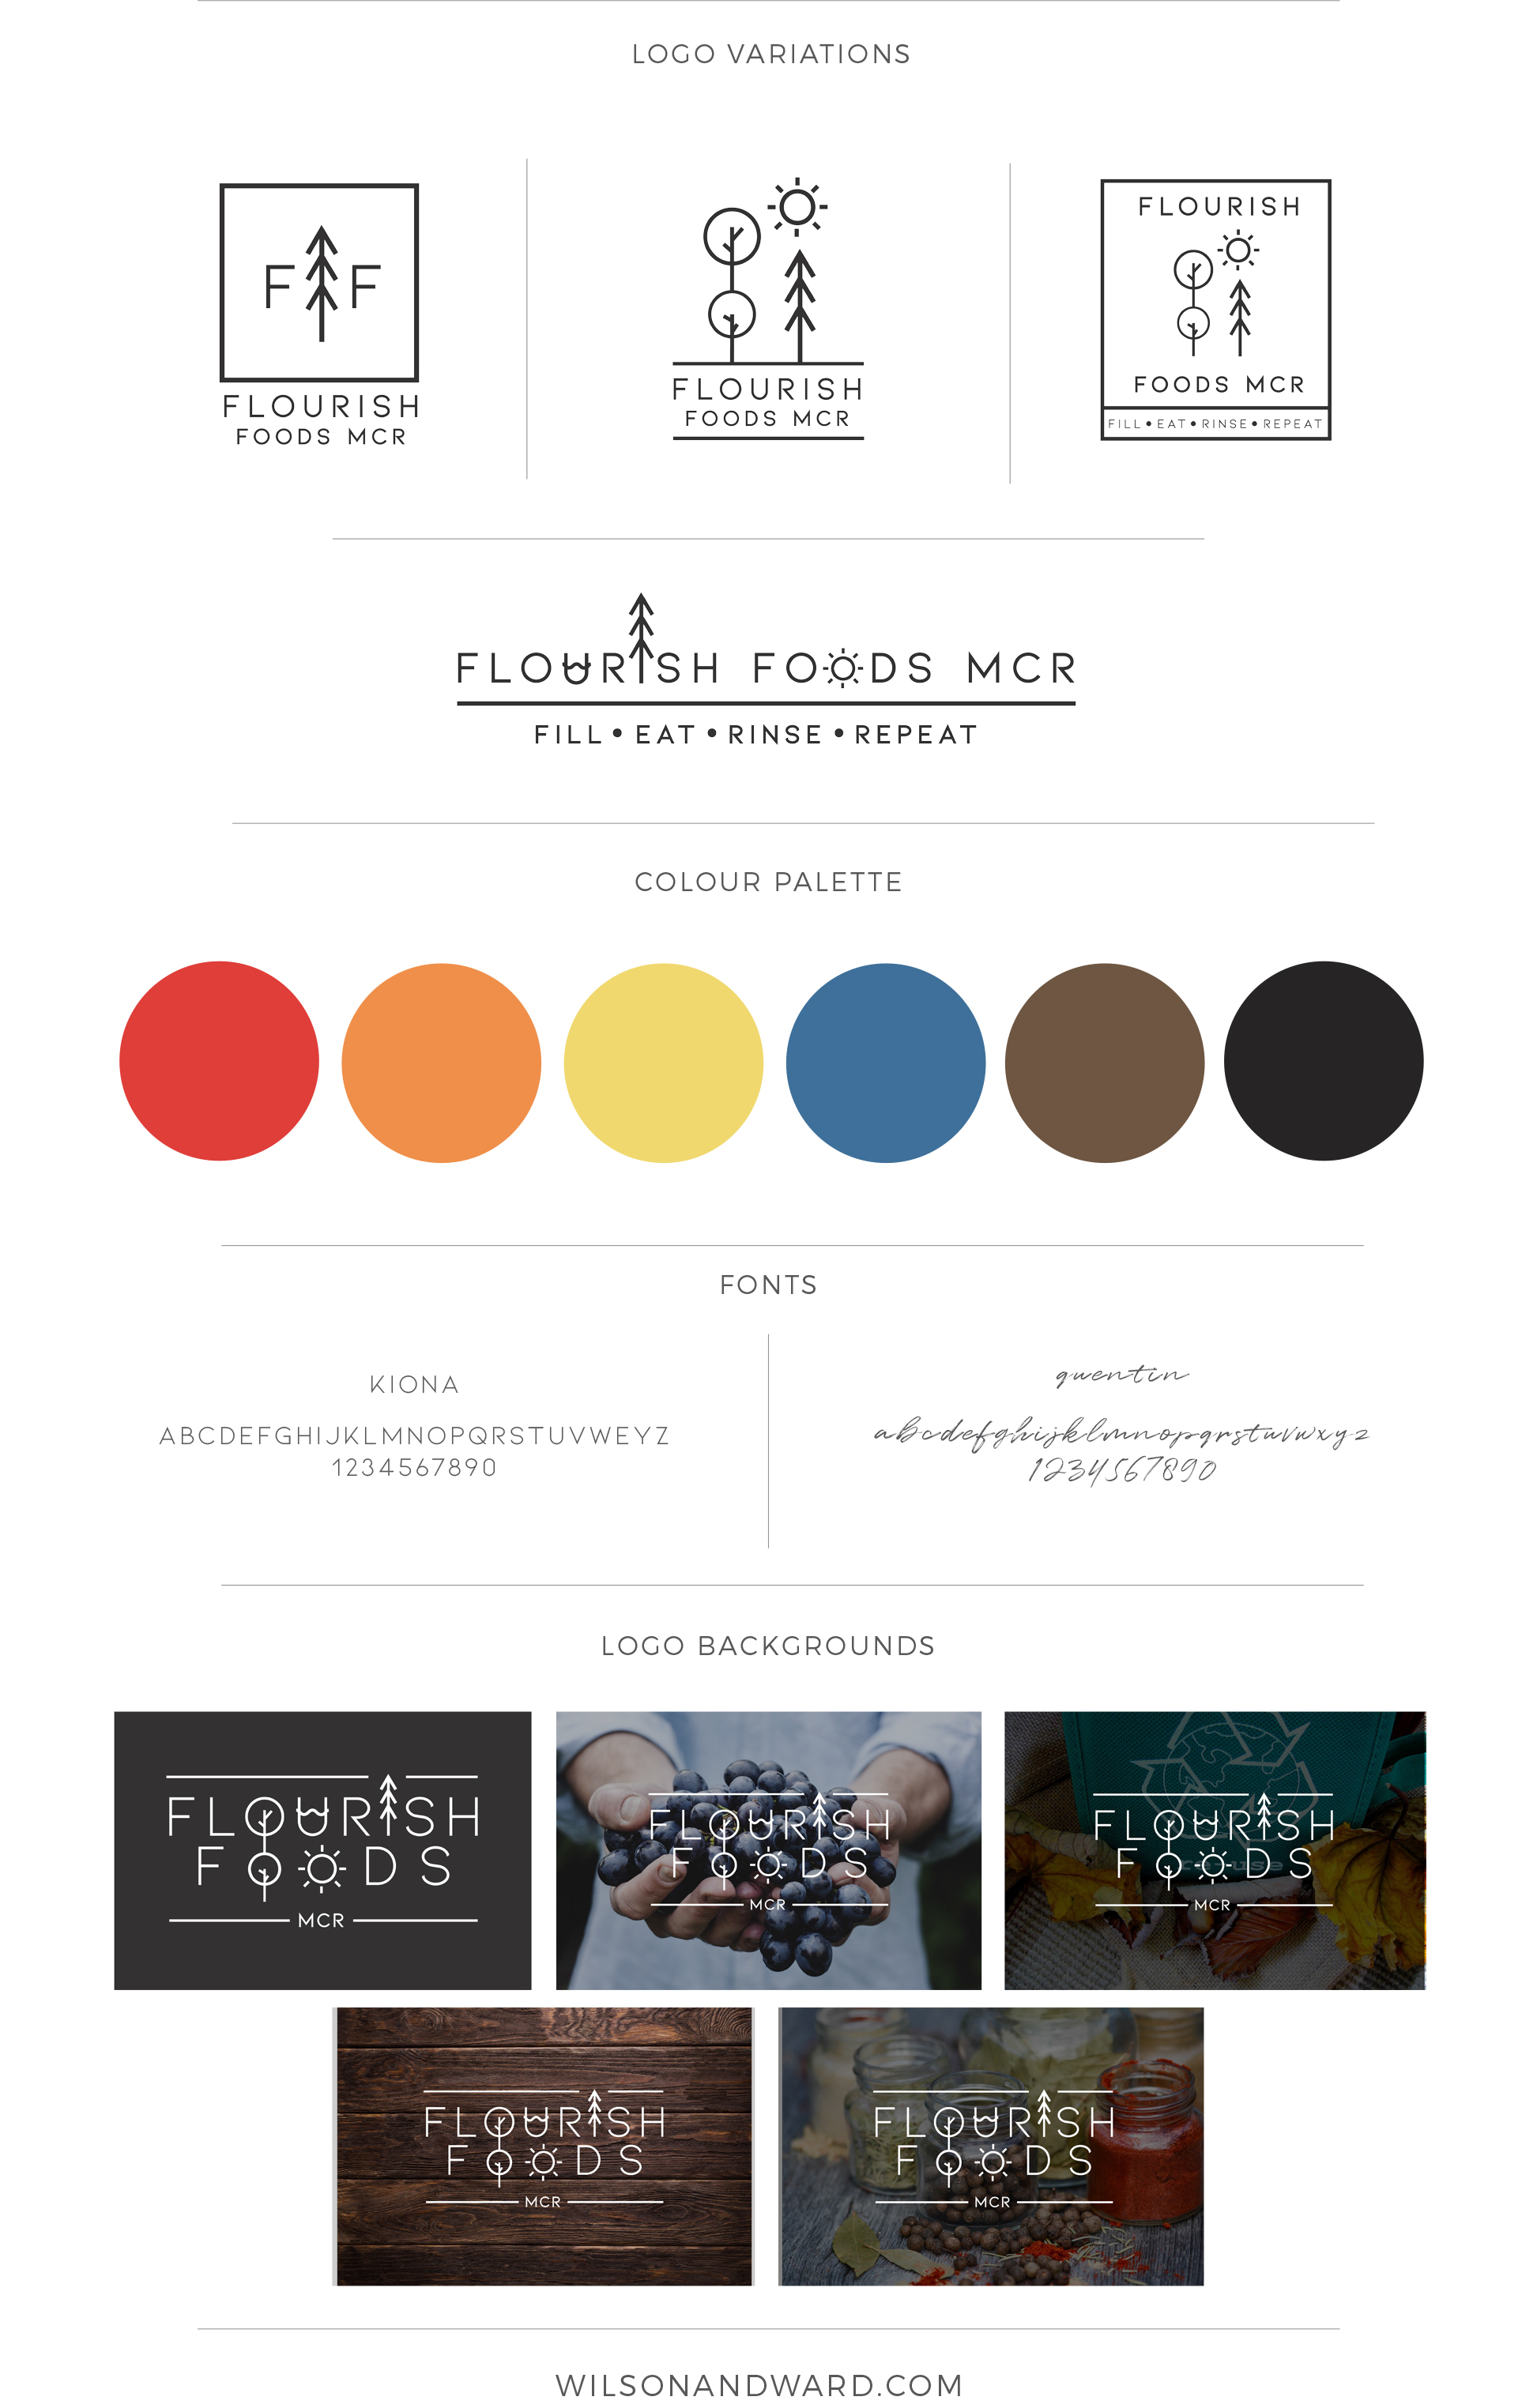 Flourish-Foods-MCR-branding-wilson-and-ward.jpg